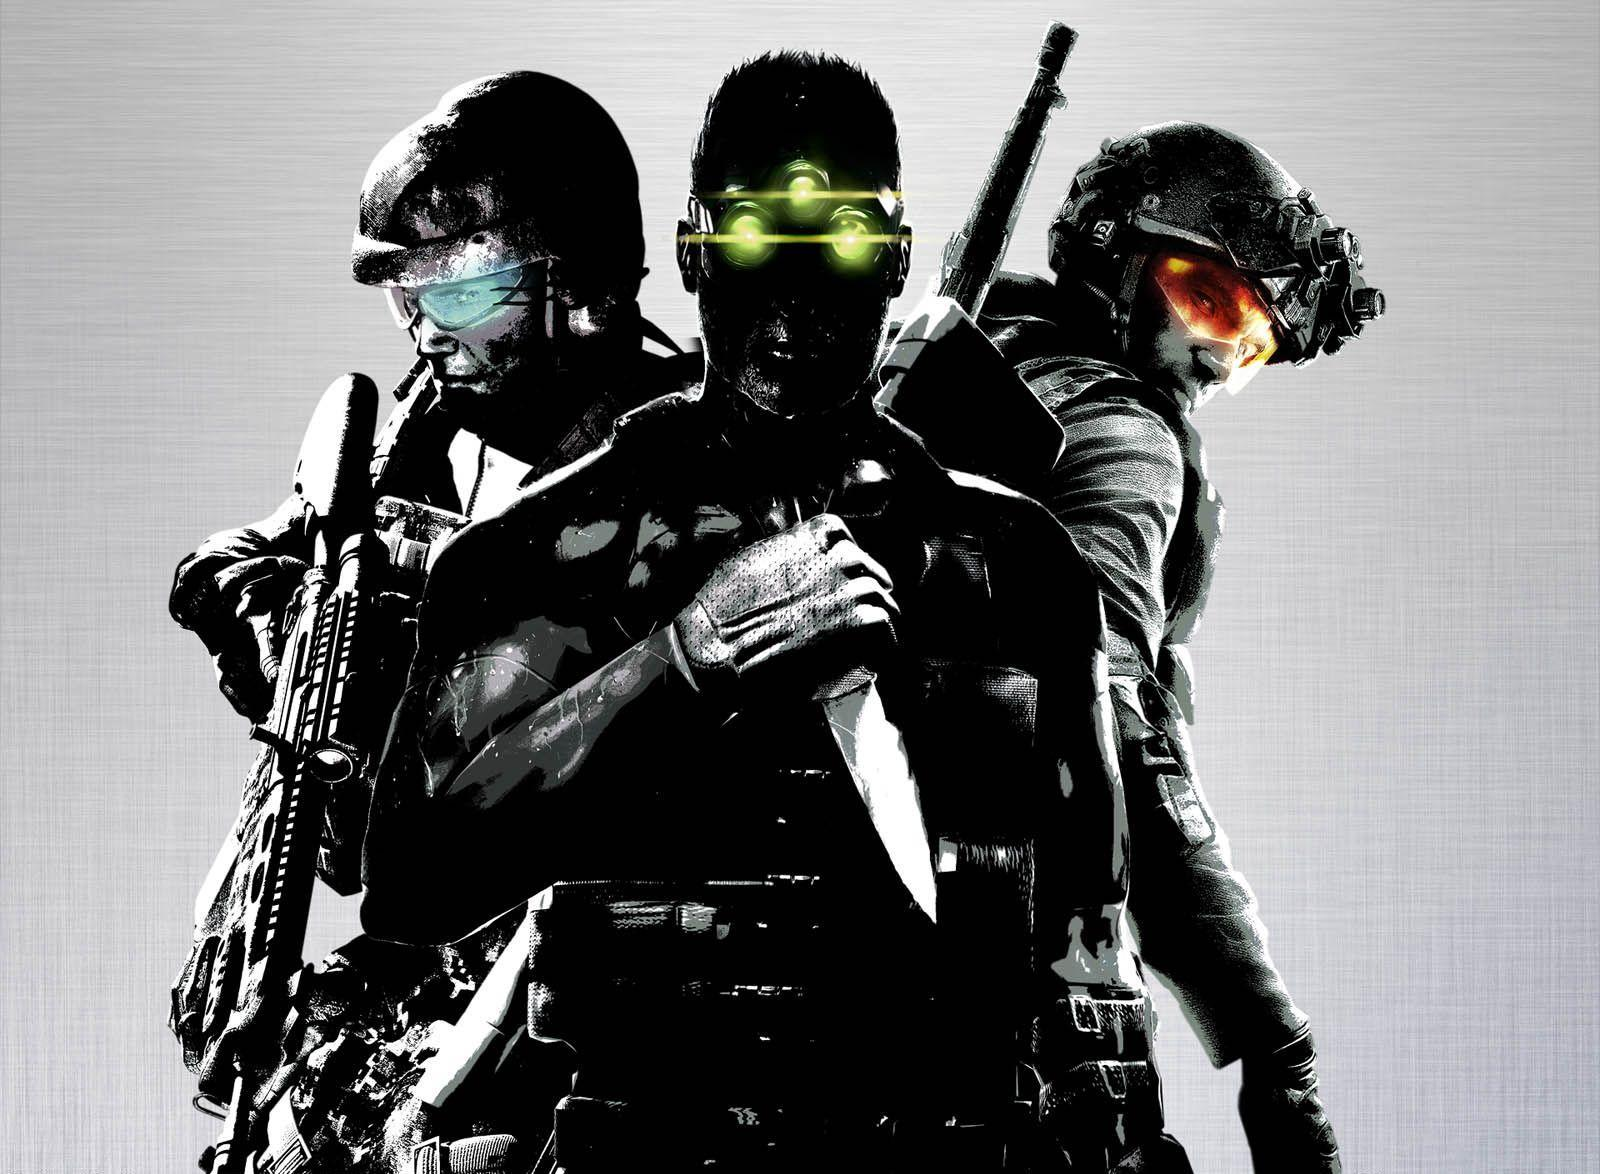 Rainbow Six Wallpaper - wallpaper.